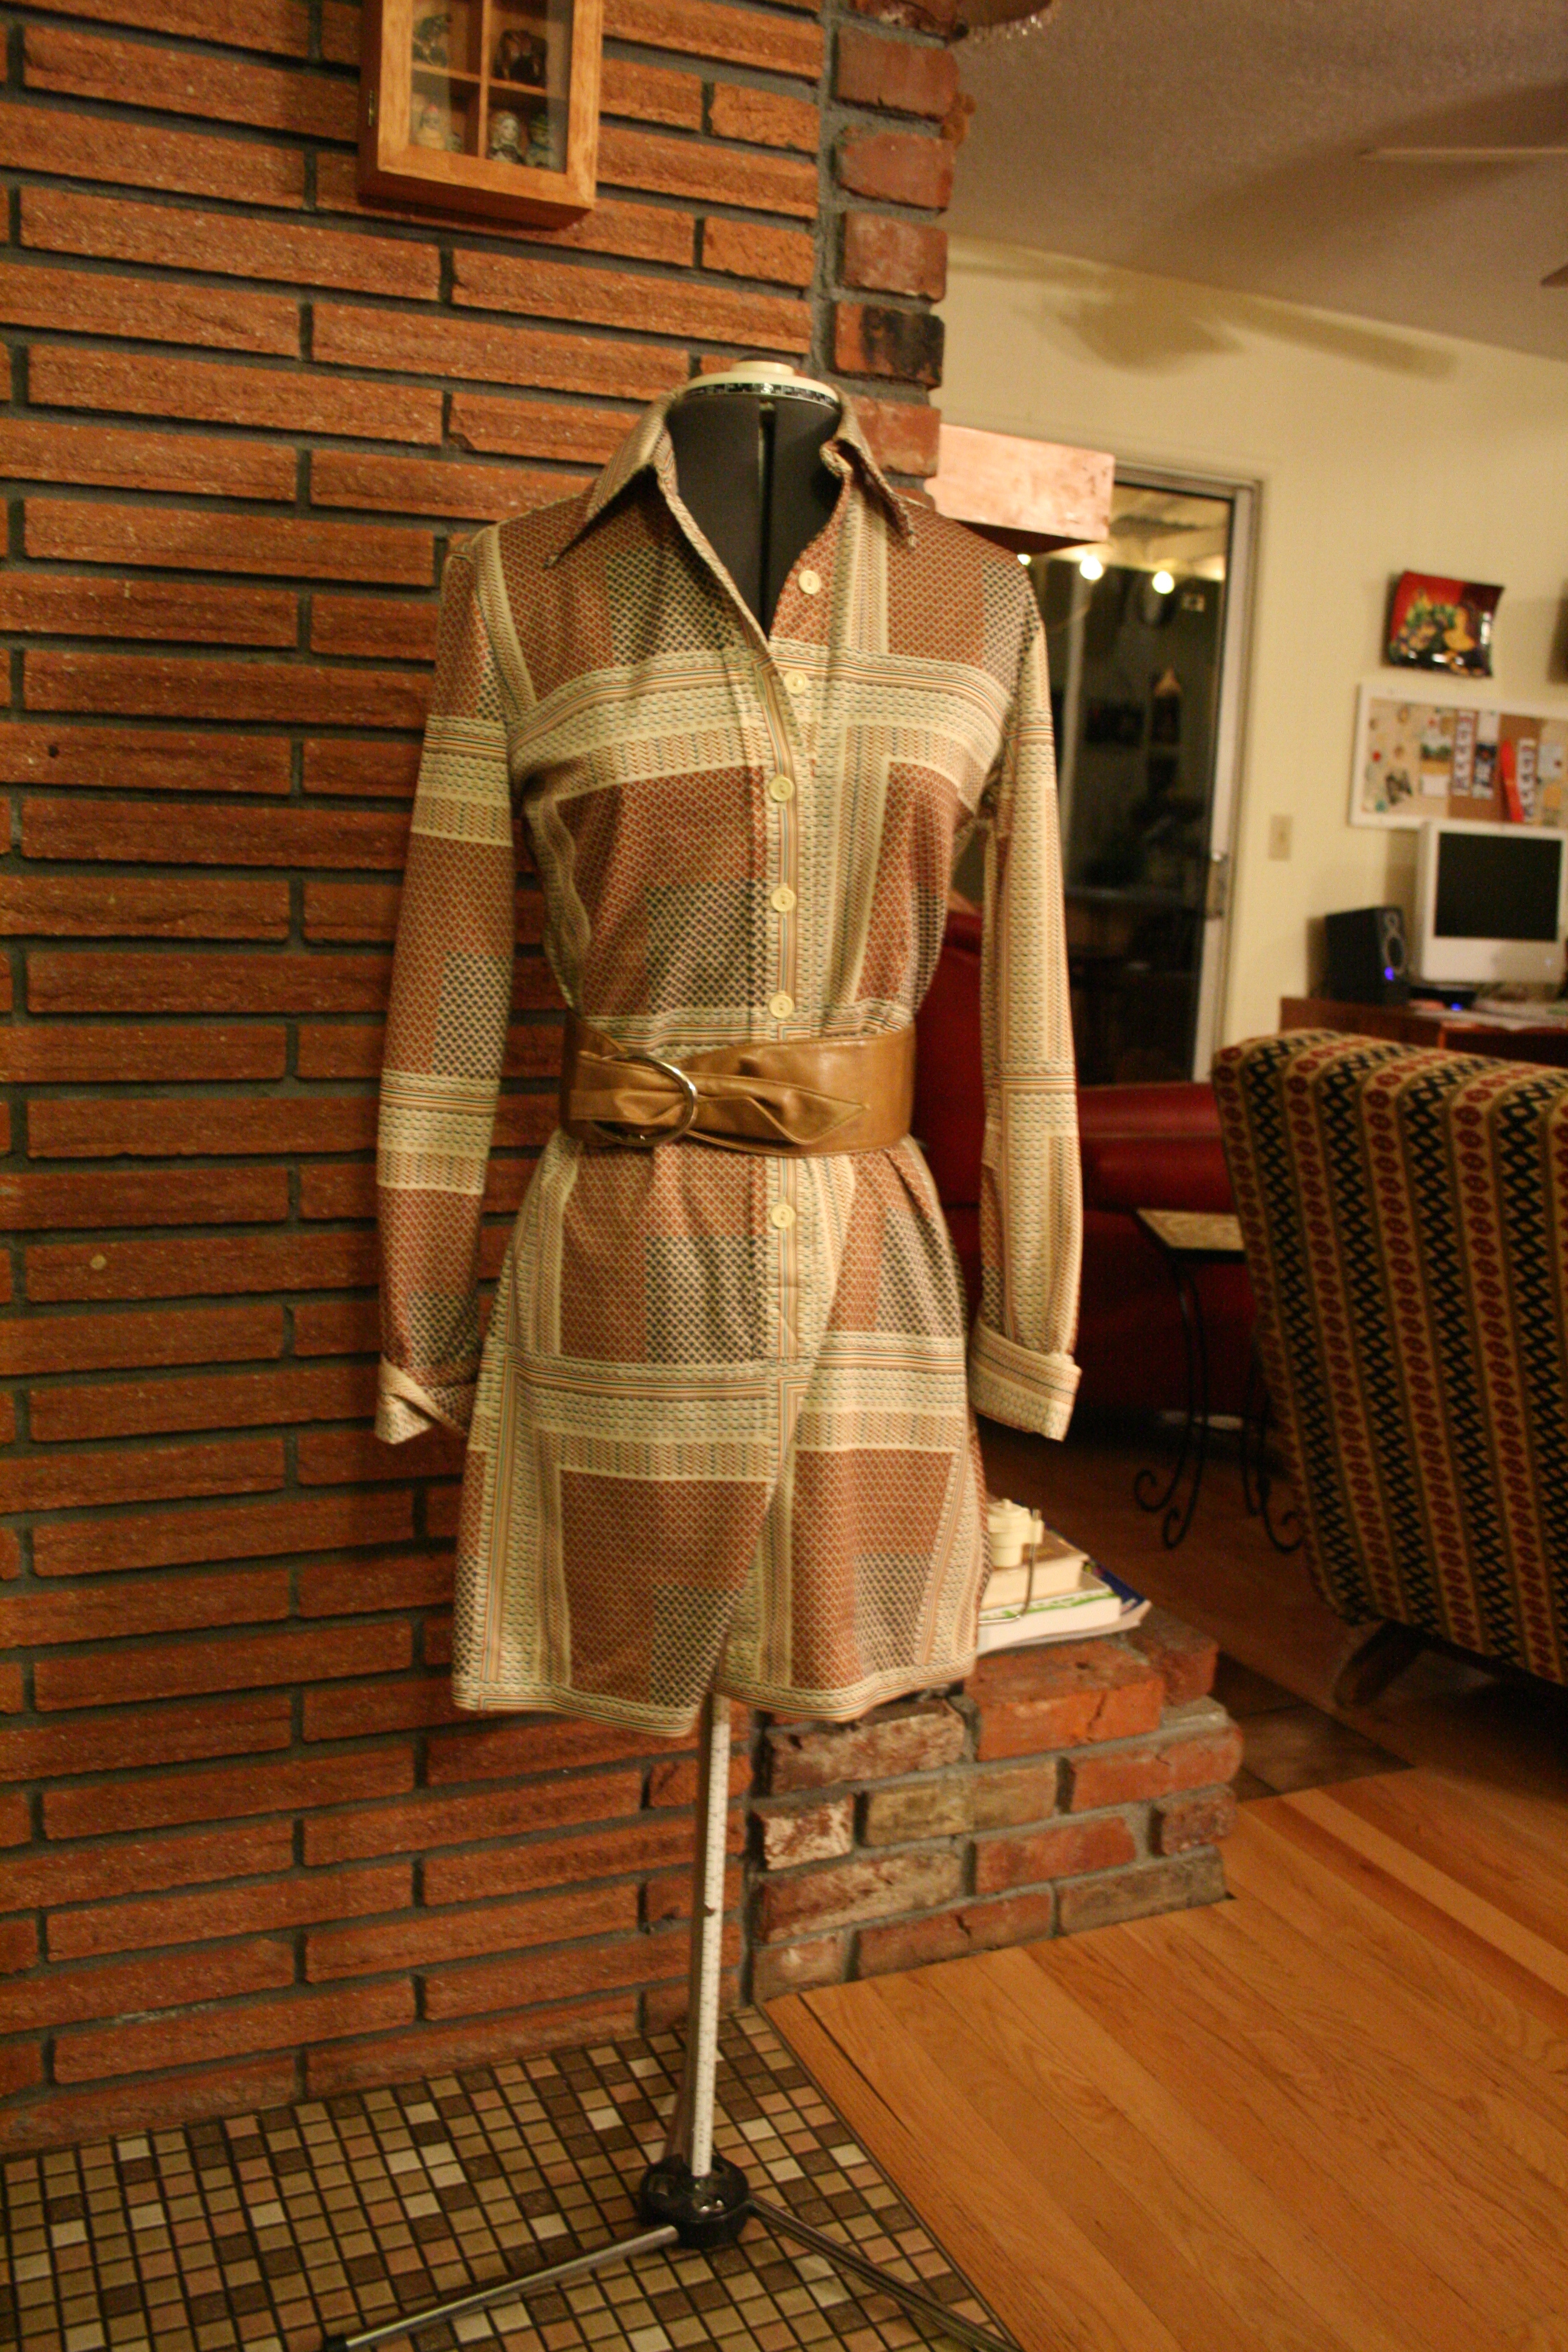 Pendleton dress, modeled by my trusty sewing form.